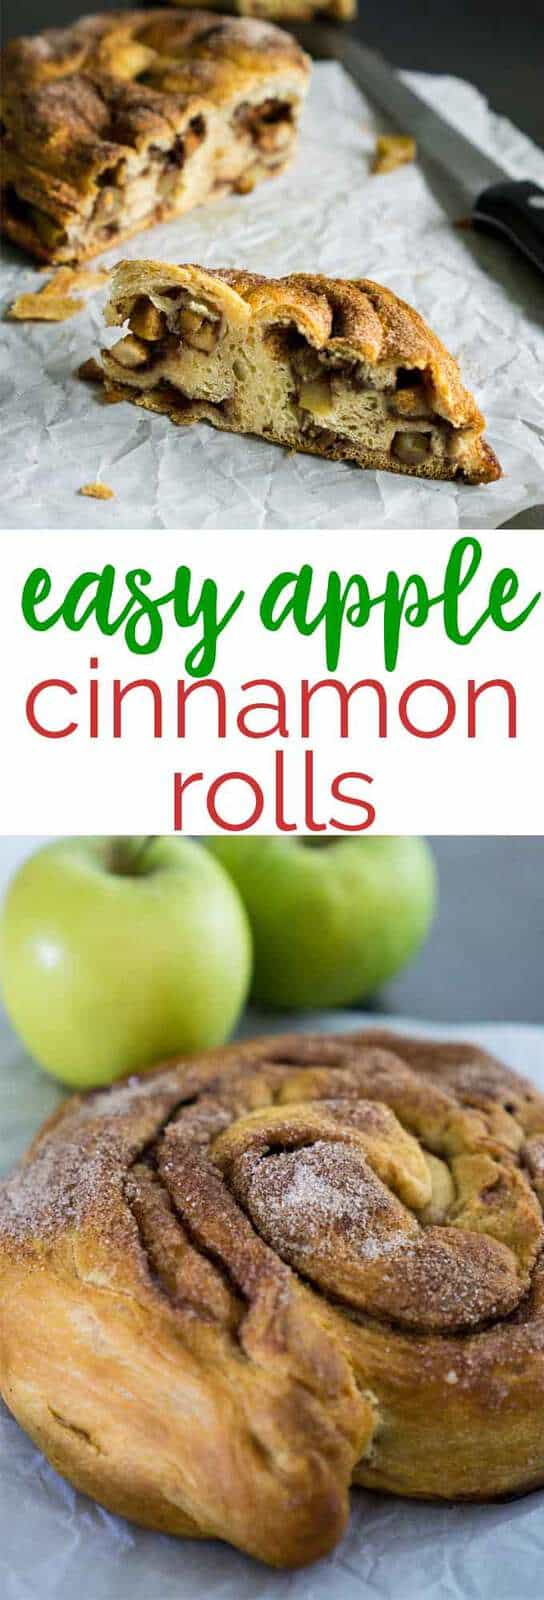 Four ingredients and 5 minutes prep time make this Apple Cinnamon Roll the easiest dessert ever!